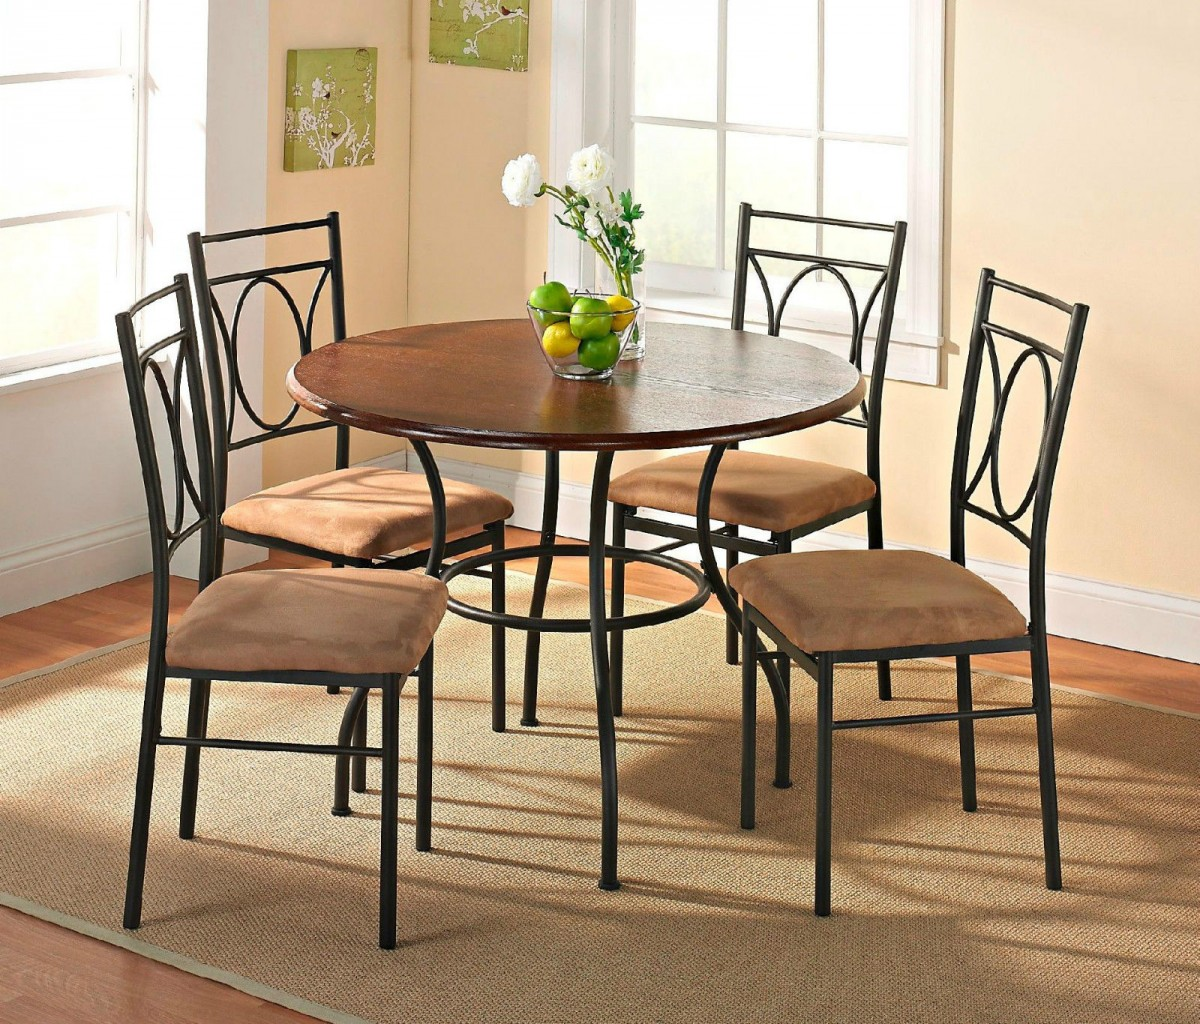 Inspiration small dining room table sets small dining room table and chairs qfclzwu